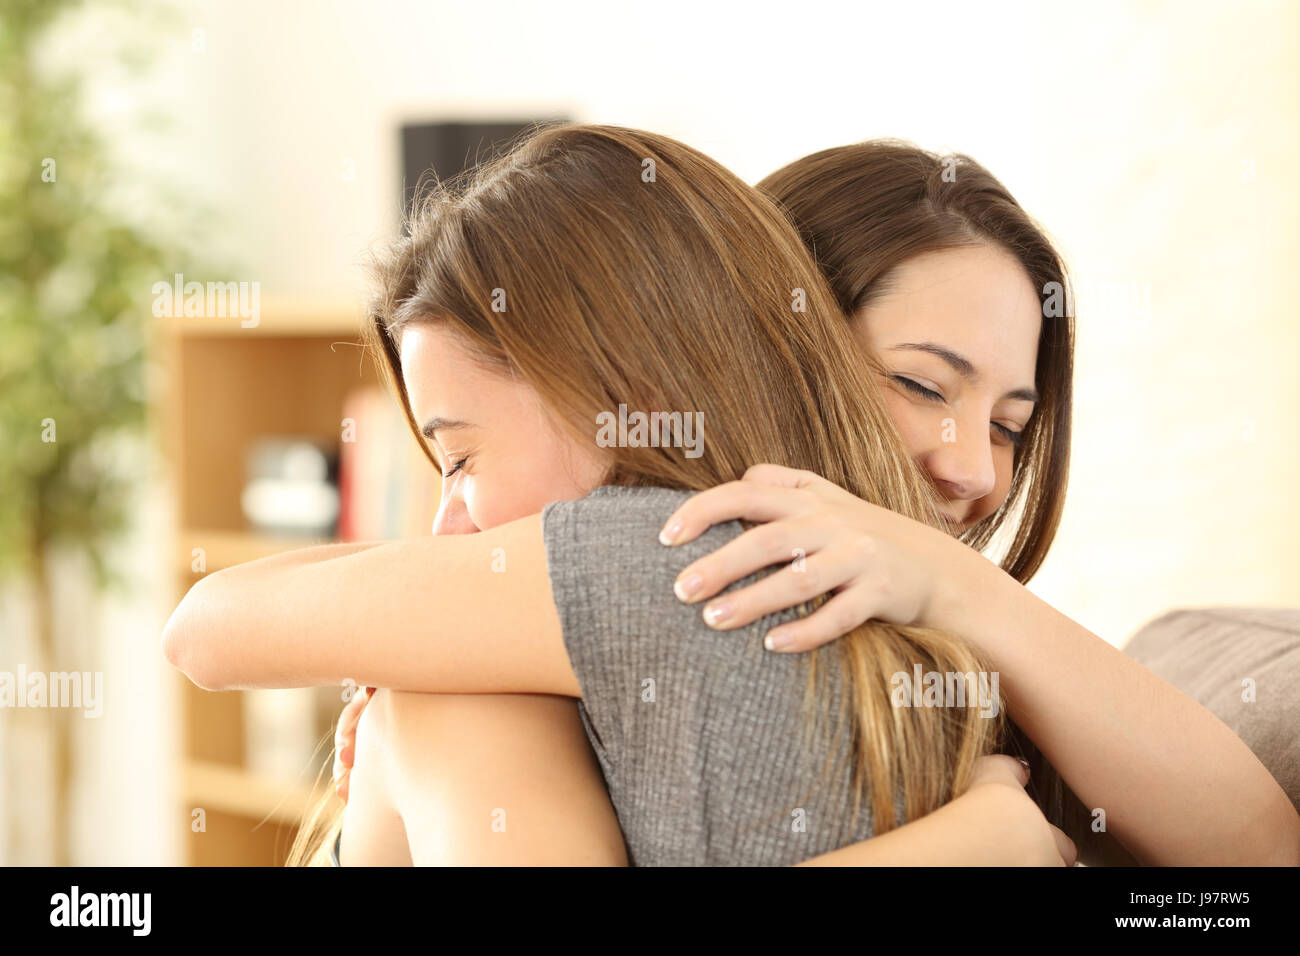 Happy girls embracing at home sitting on a couch in the living room at home - Stock Image